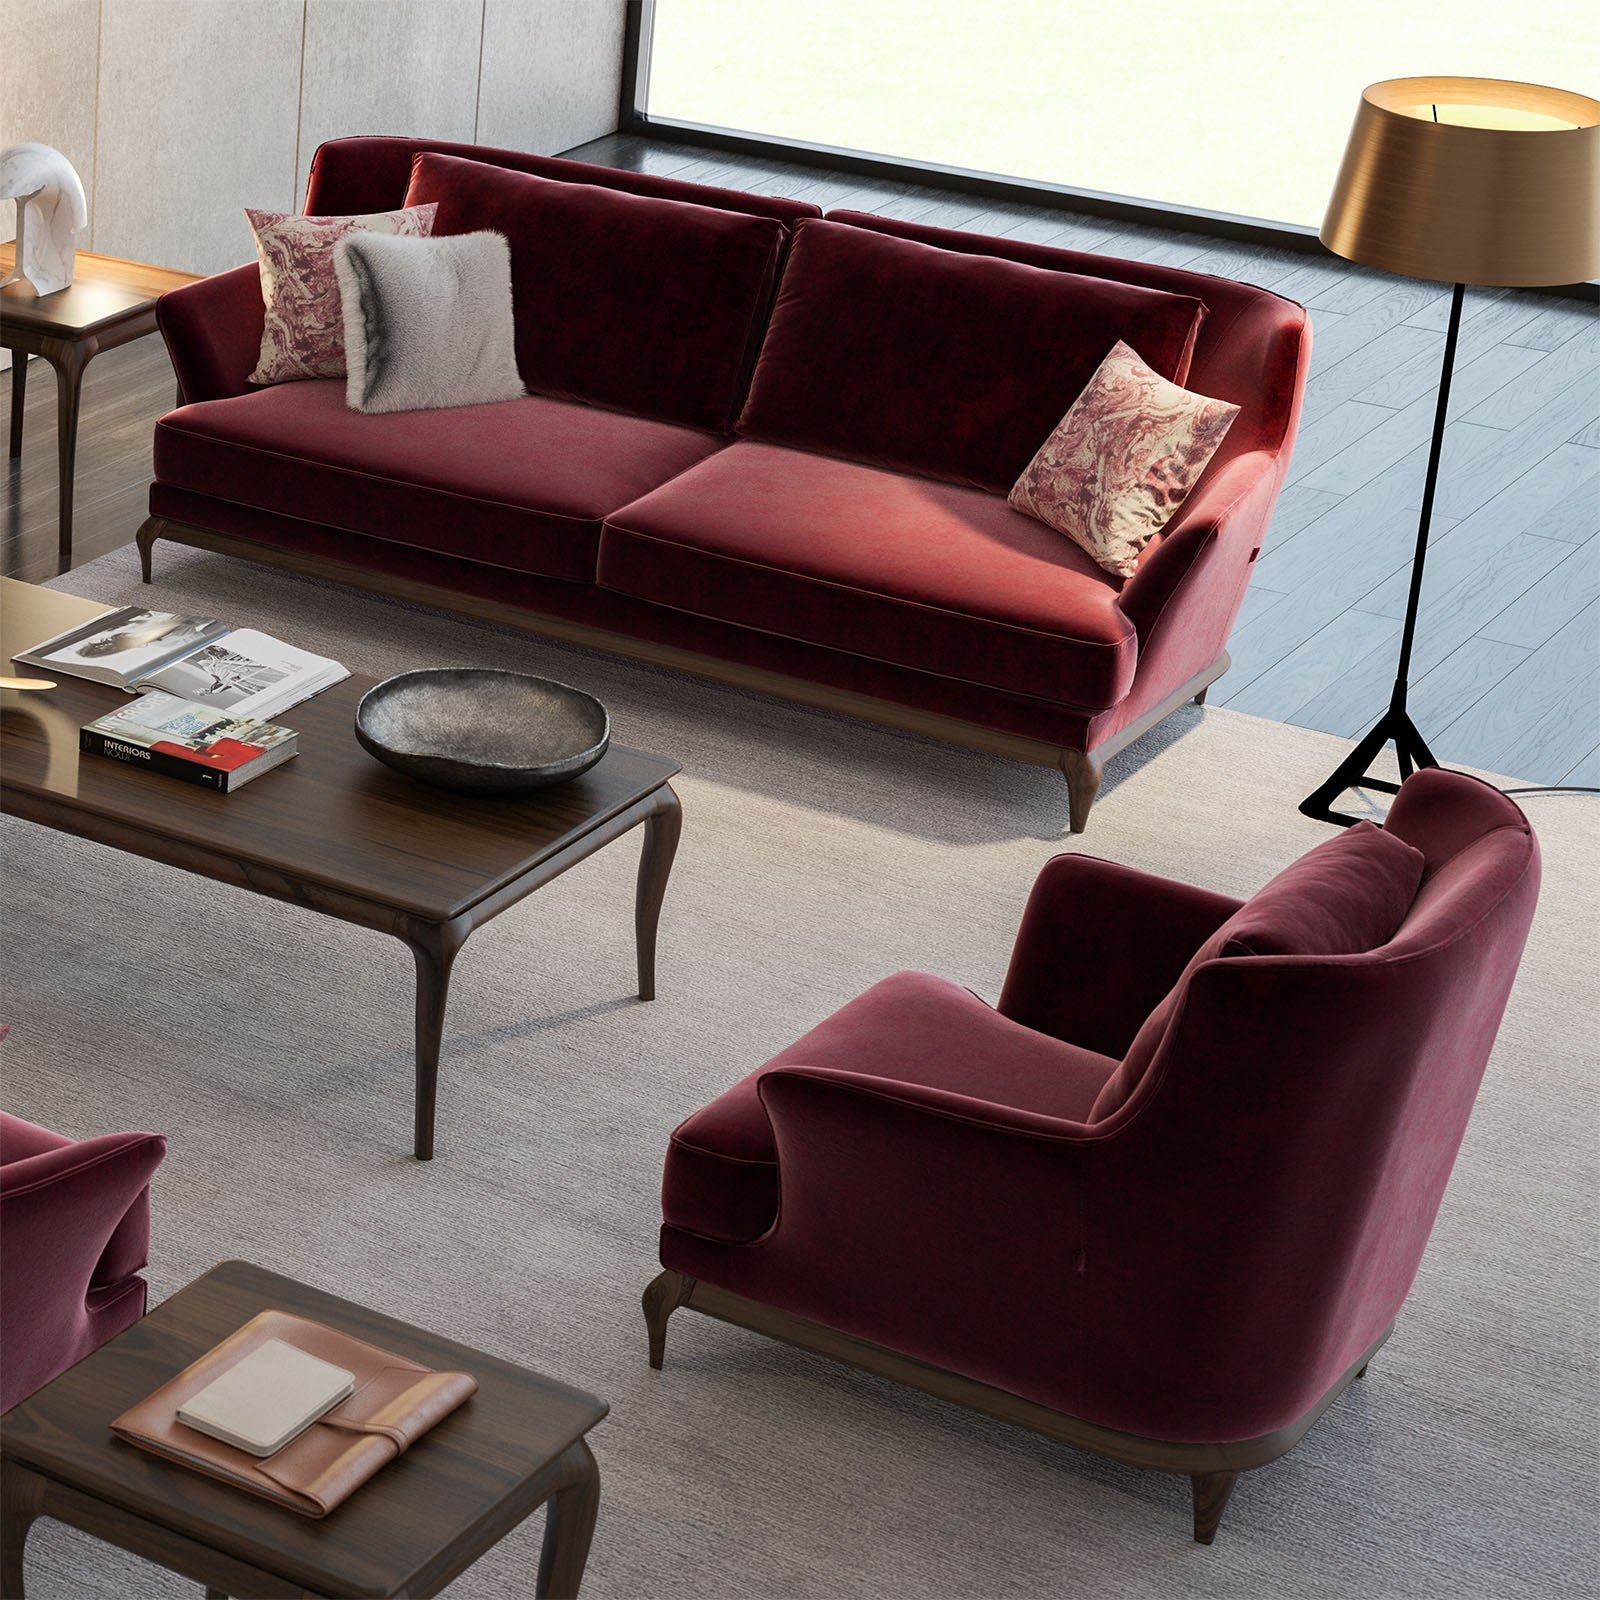 3+1 Norma Sofa Set Norma001 -  3 + 1 طقم كنب نورما - Shop Online Furniture and Home Decor Store in Dubai, UAE at ebarza